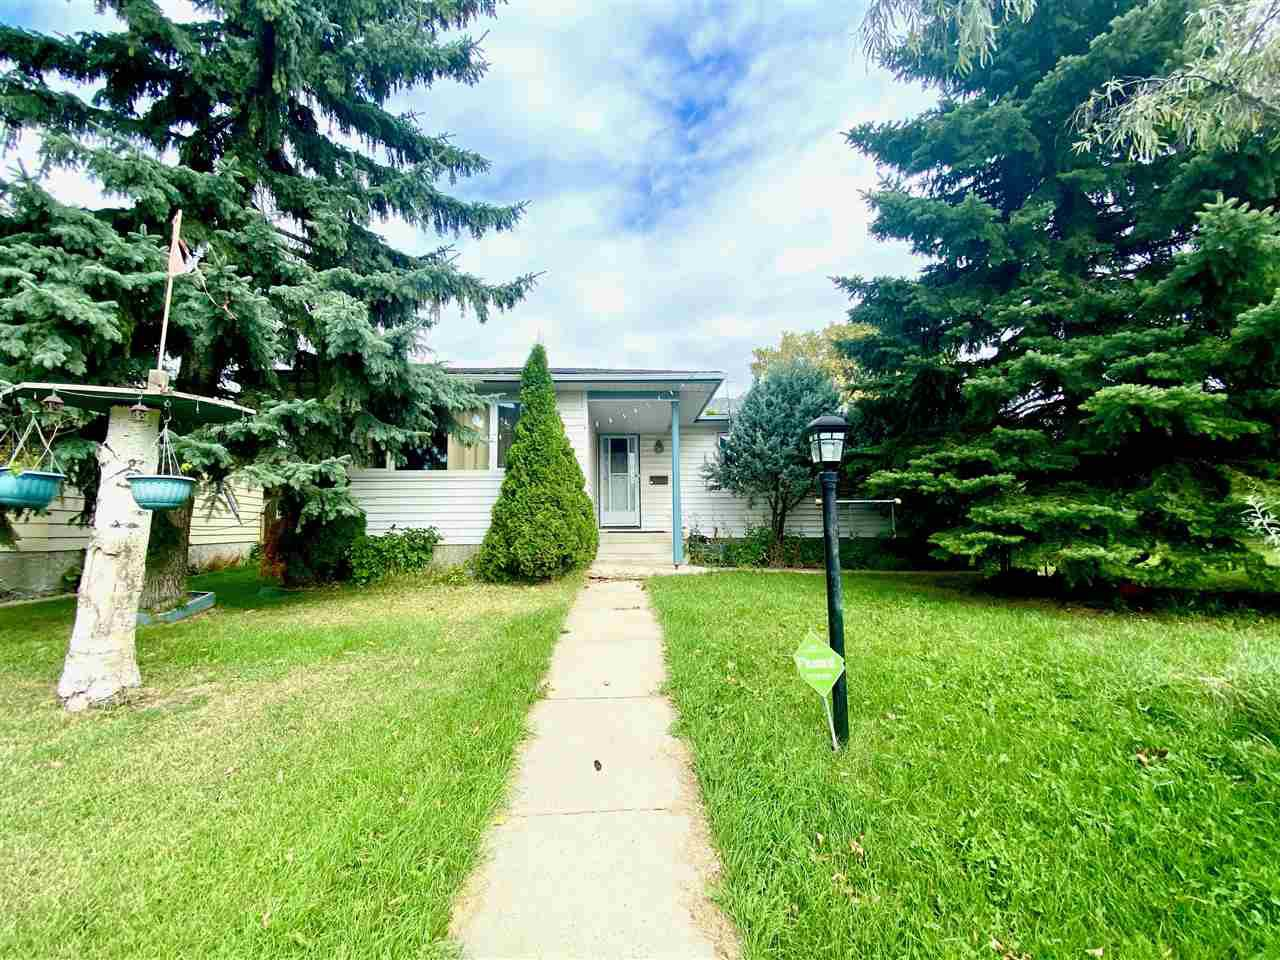 Main Photo: 890 KNOTTWOOD Road S in Edmonton: Zone 29 House for sale : MLS®# E4213486